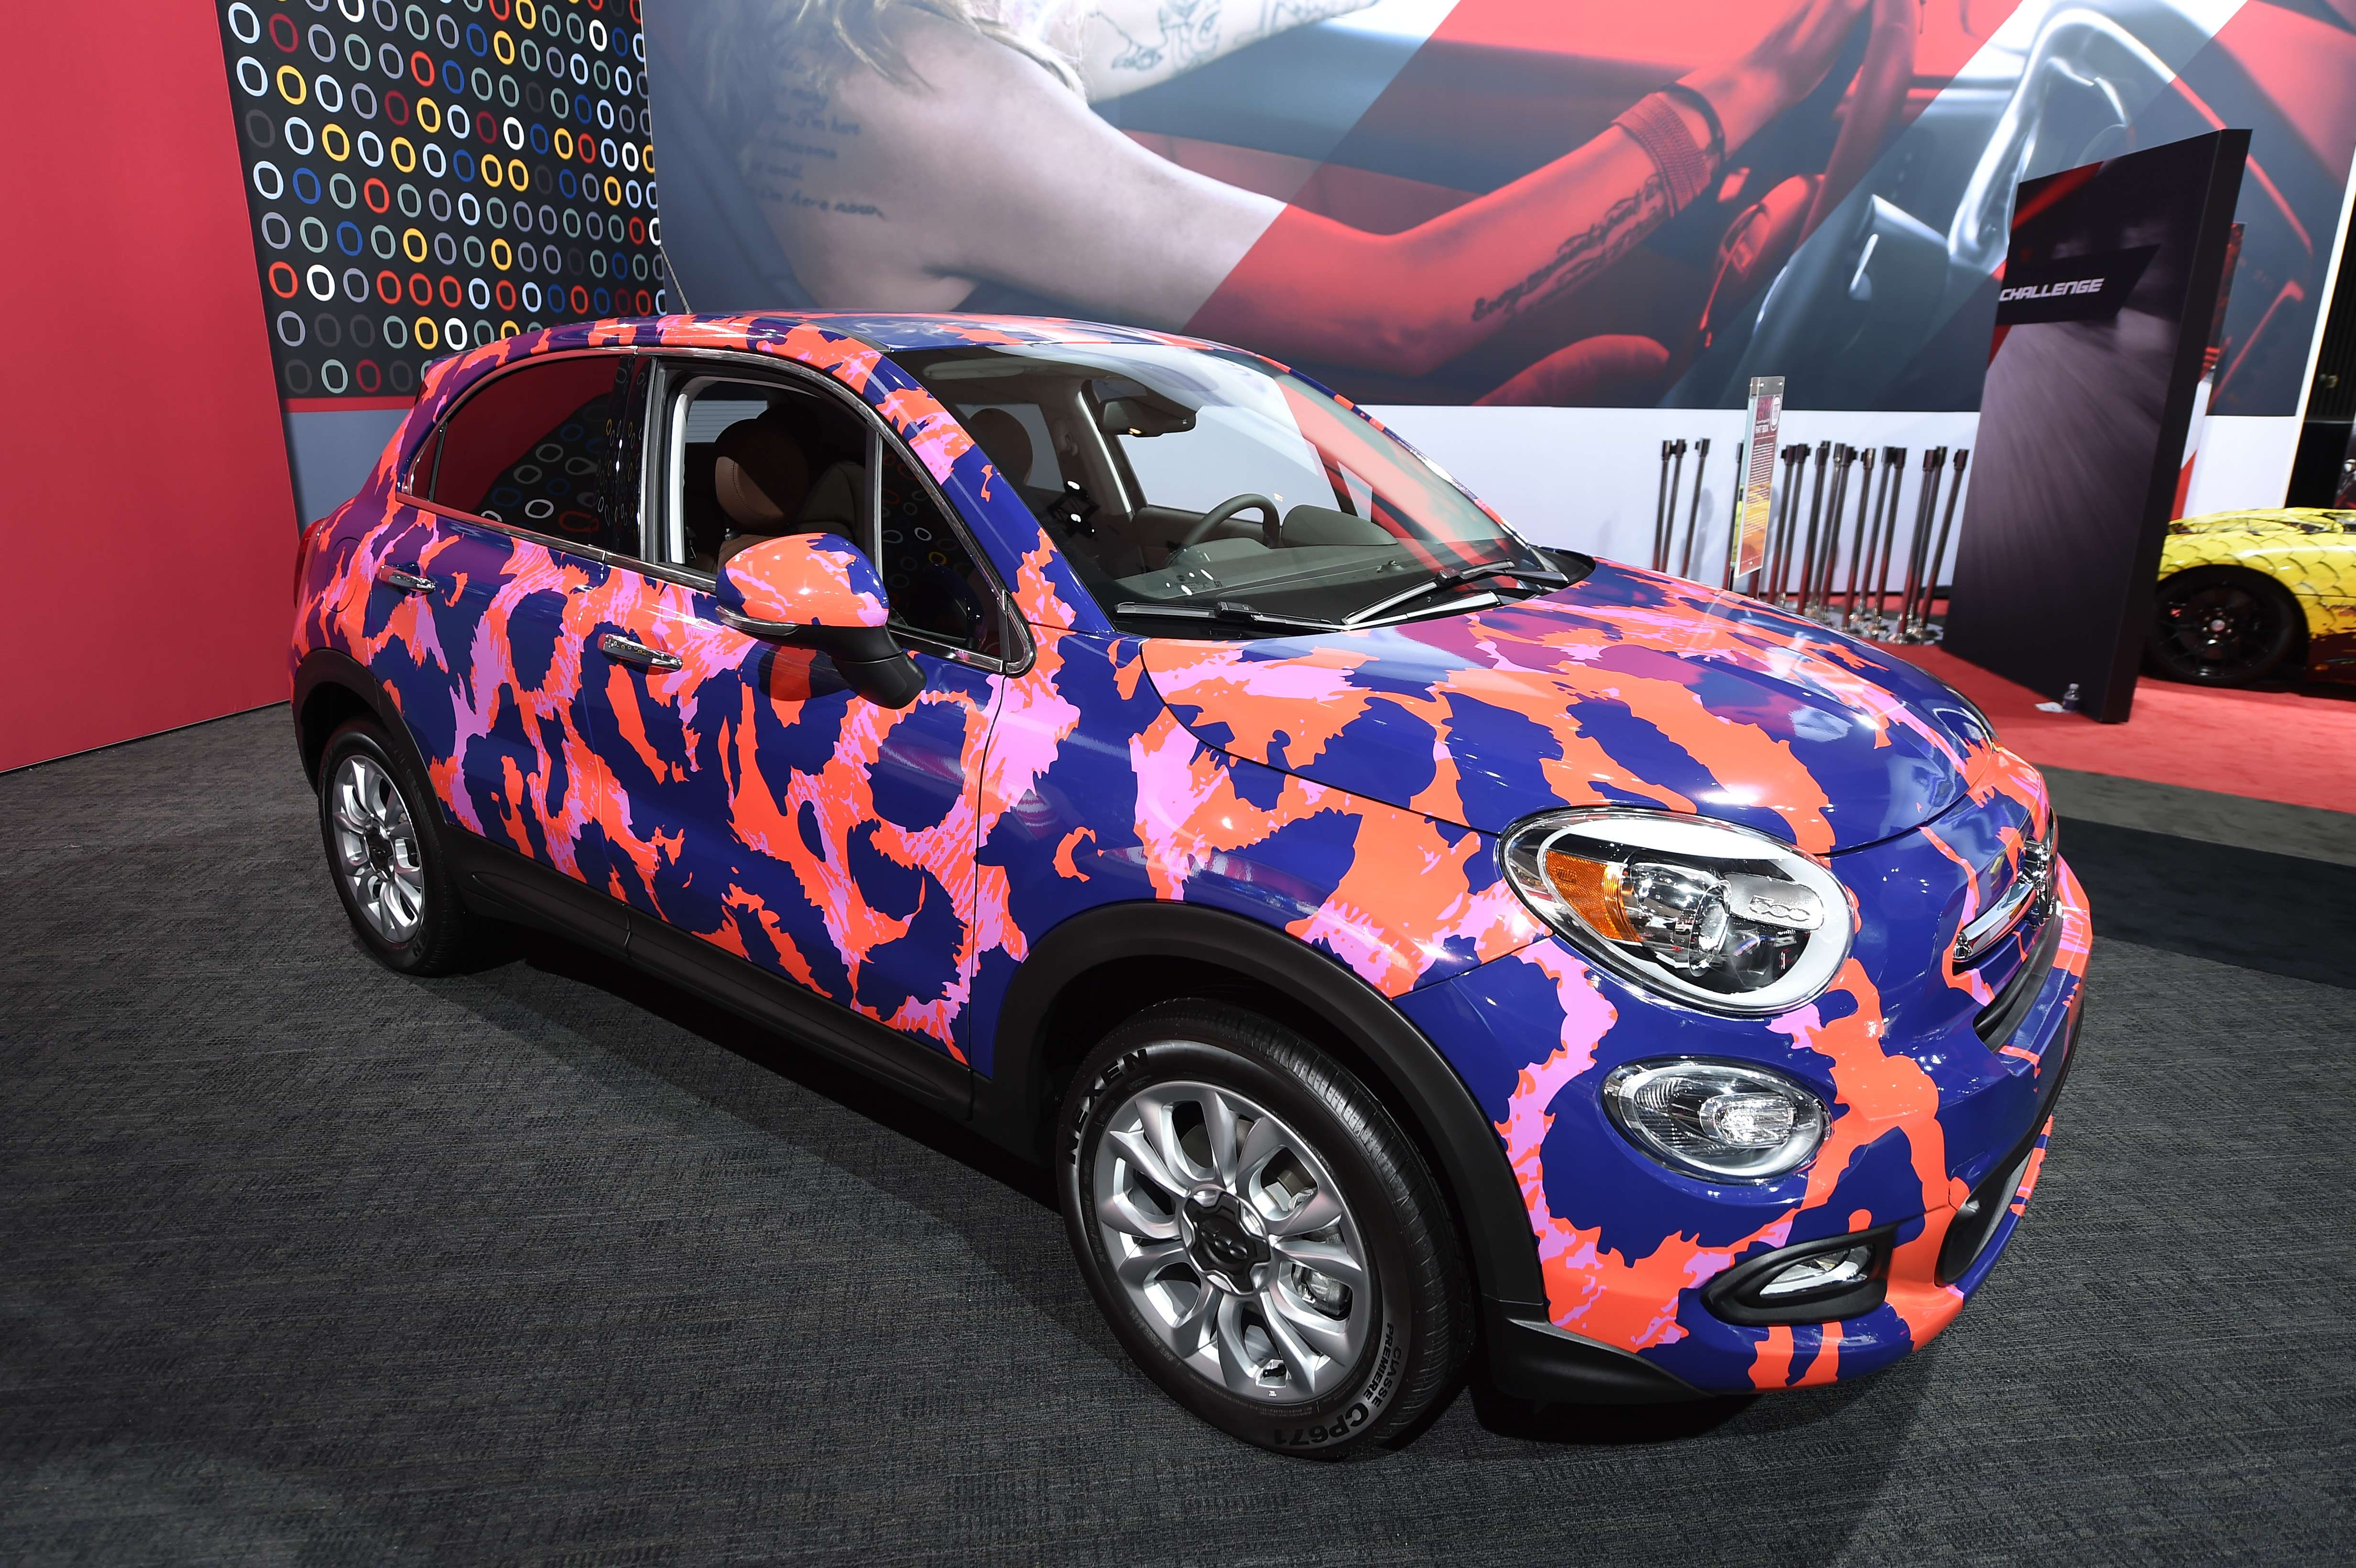 A Fiat 500X with DVF (Diane Von Furstenberg) custom wrap is displayed at the 2015 Los Angeles Auto Show on Nov. 19, 2015.